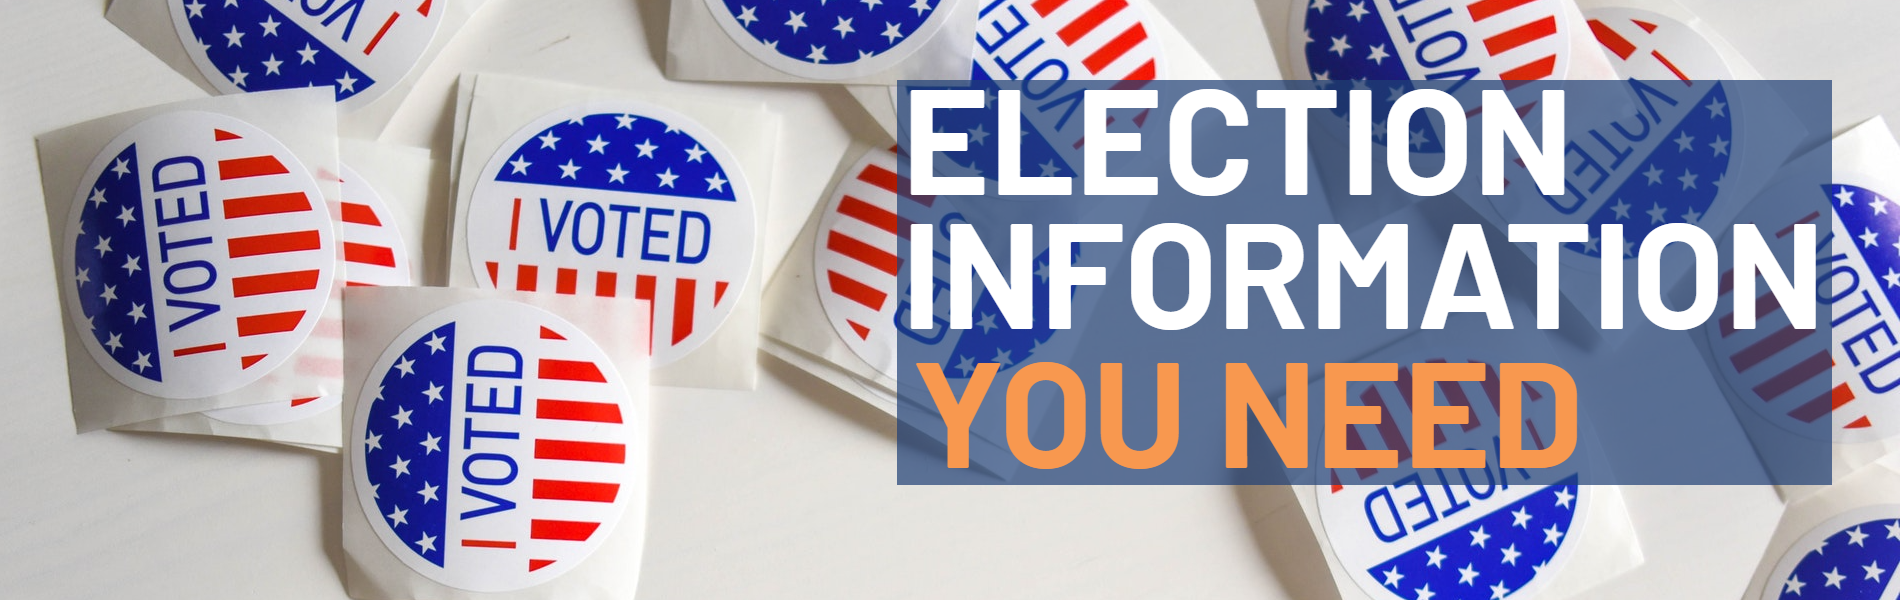 Voting and Election Resources for CA-15 Constituents